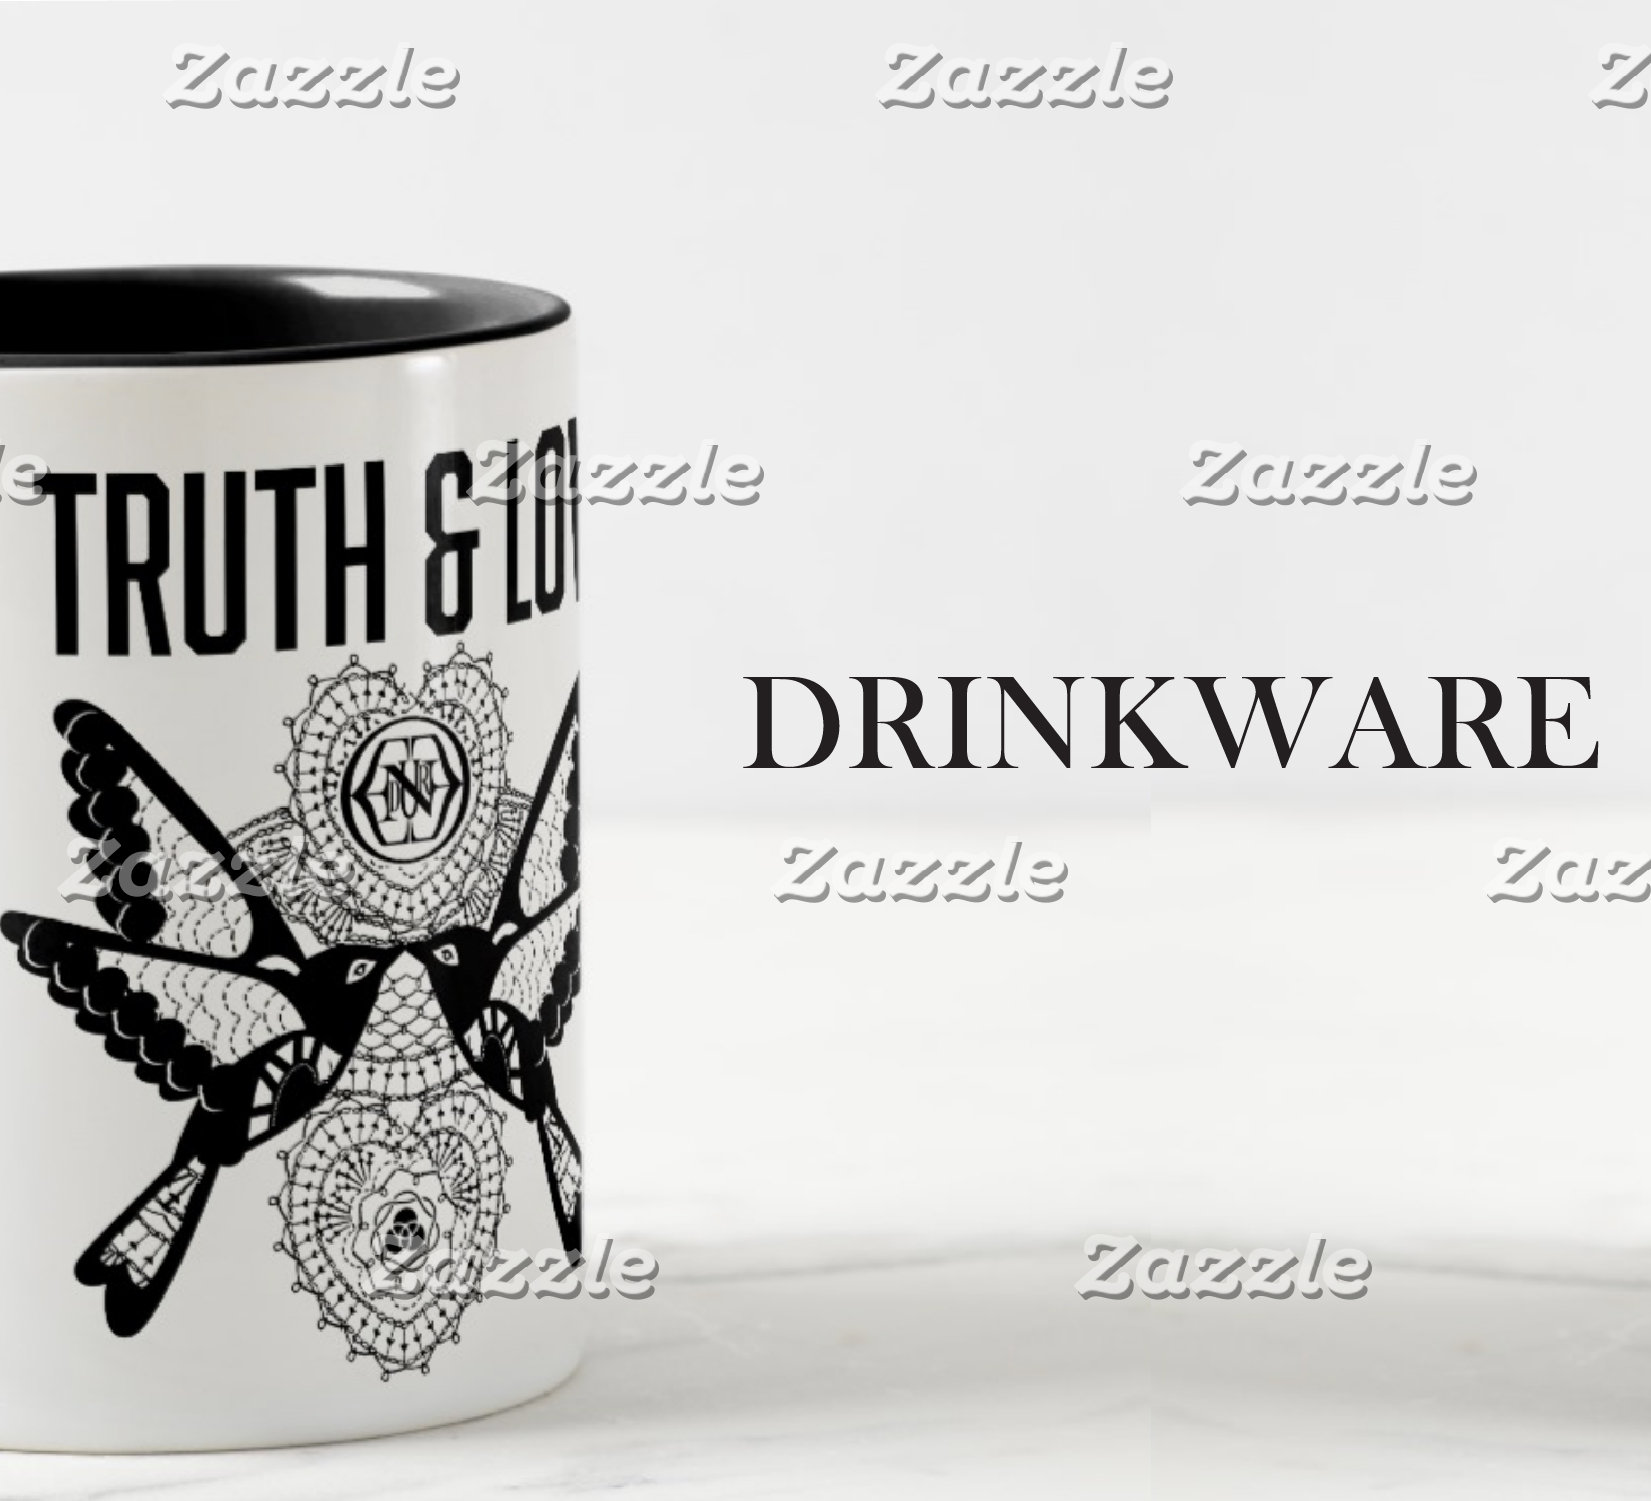 ENDURE DRINKWARE